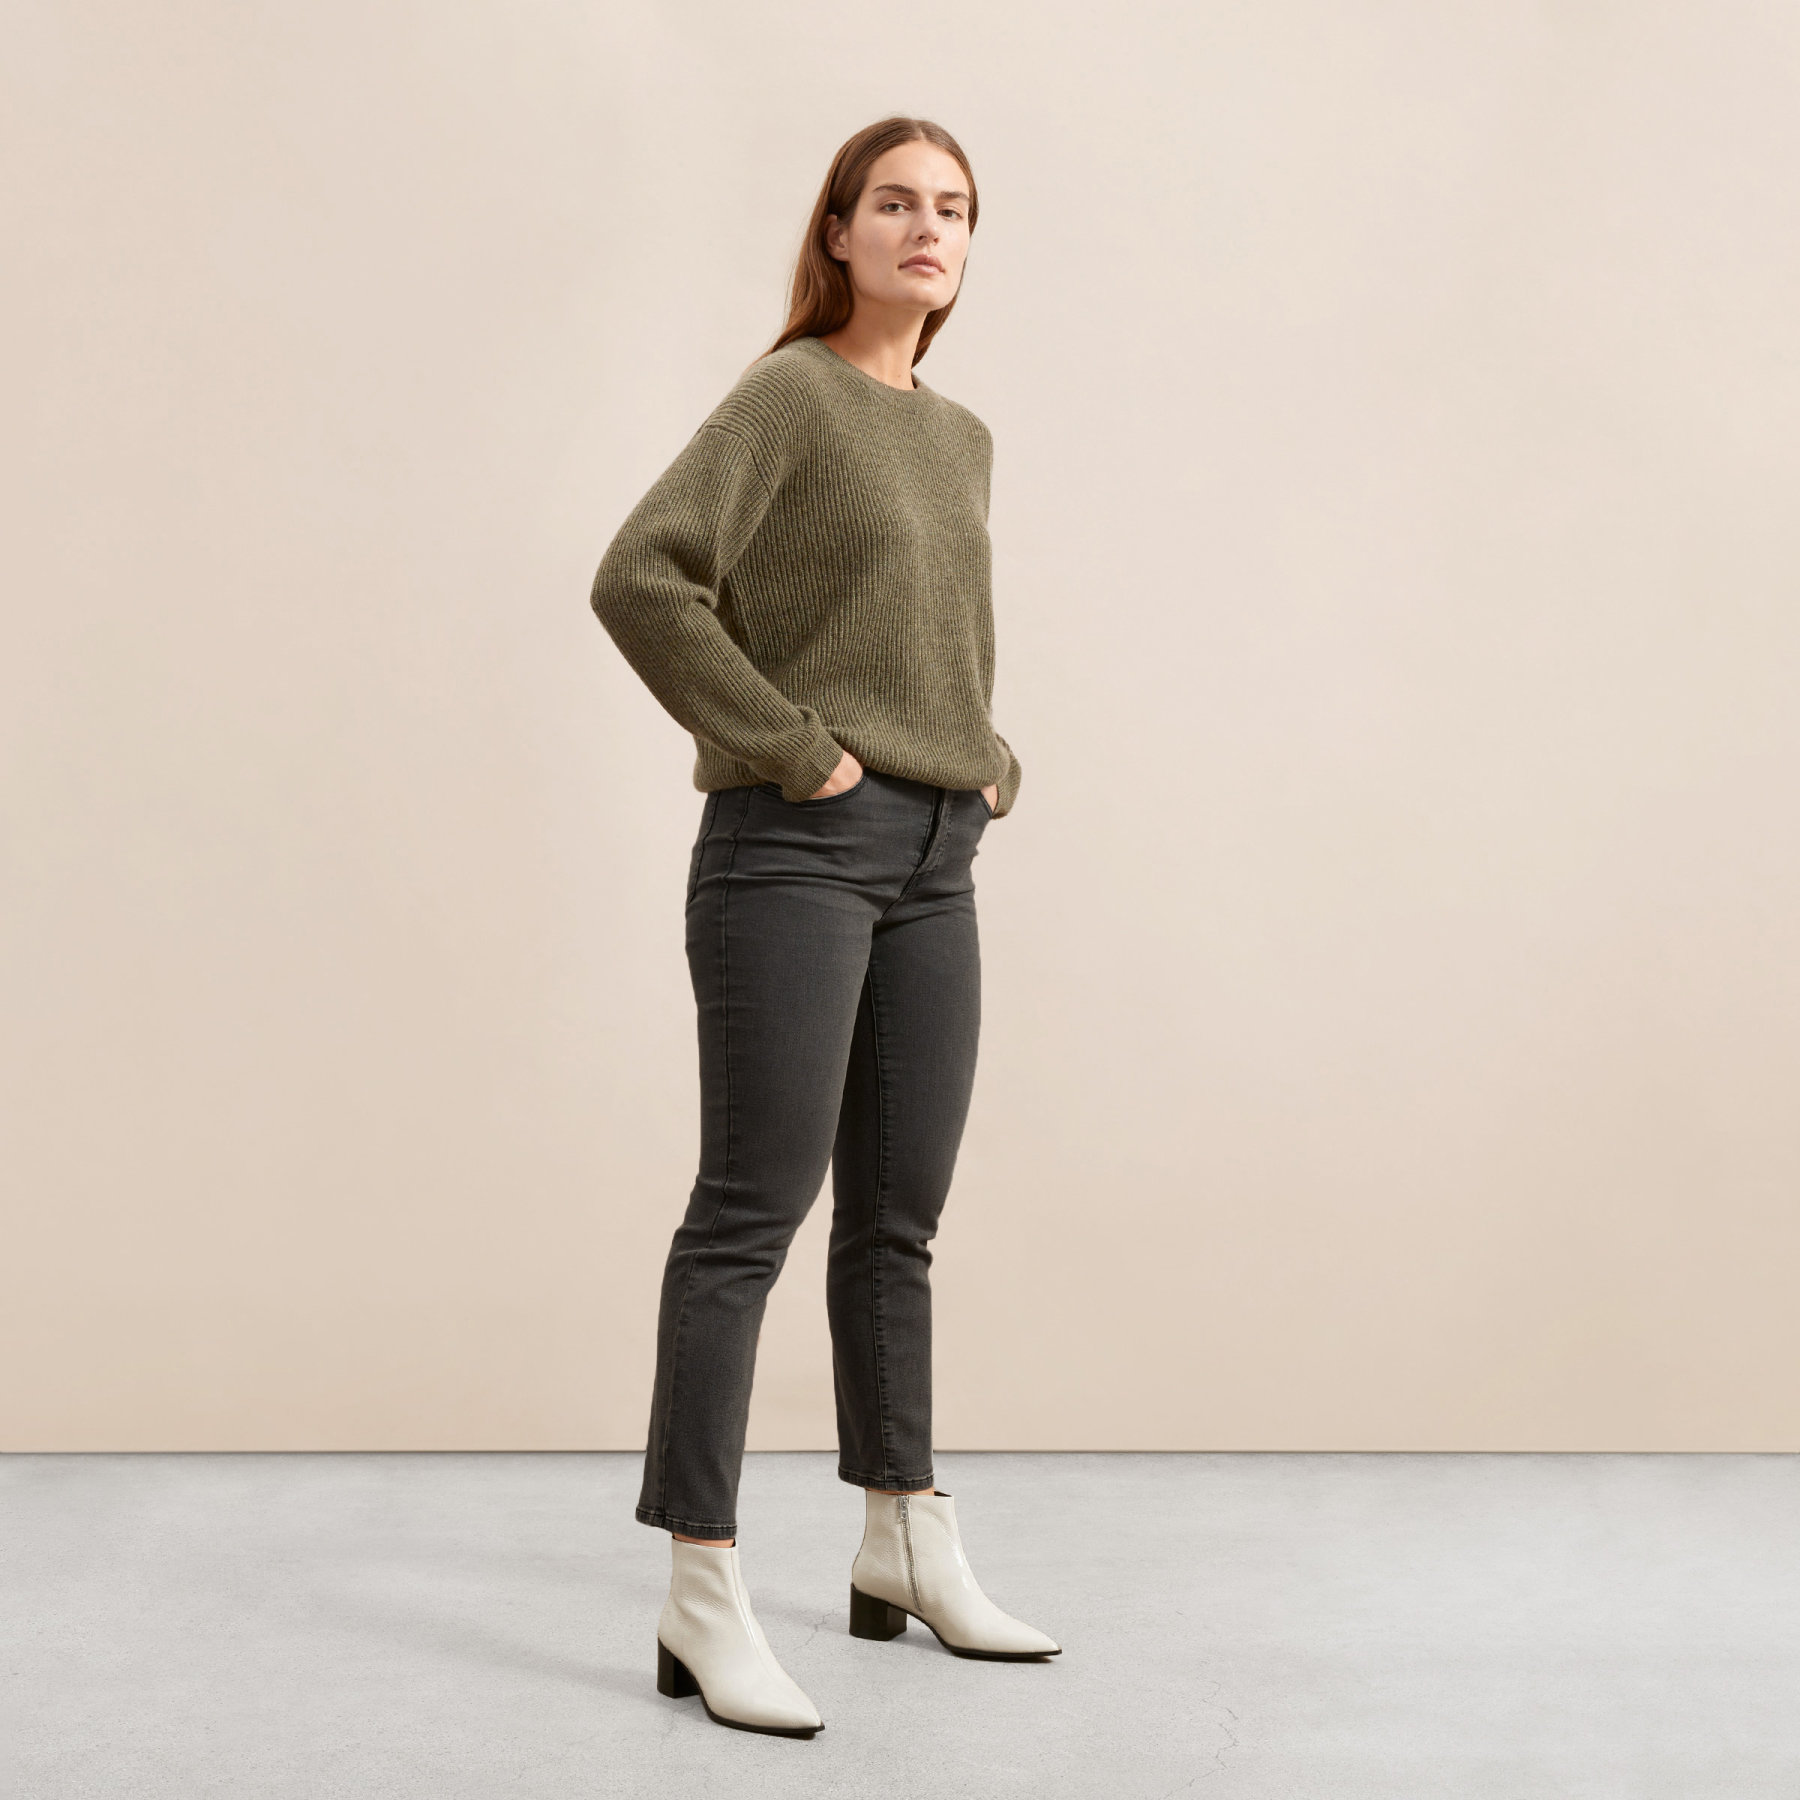 everlane review 6 best staples the boss boot